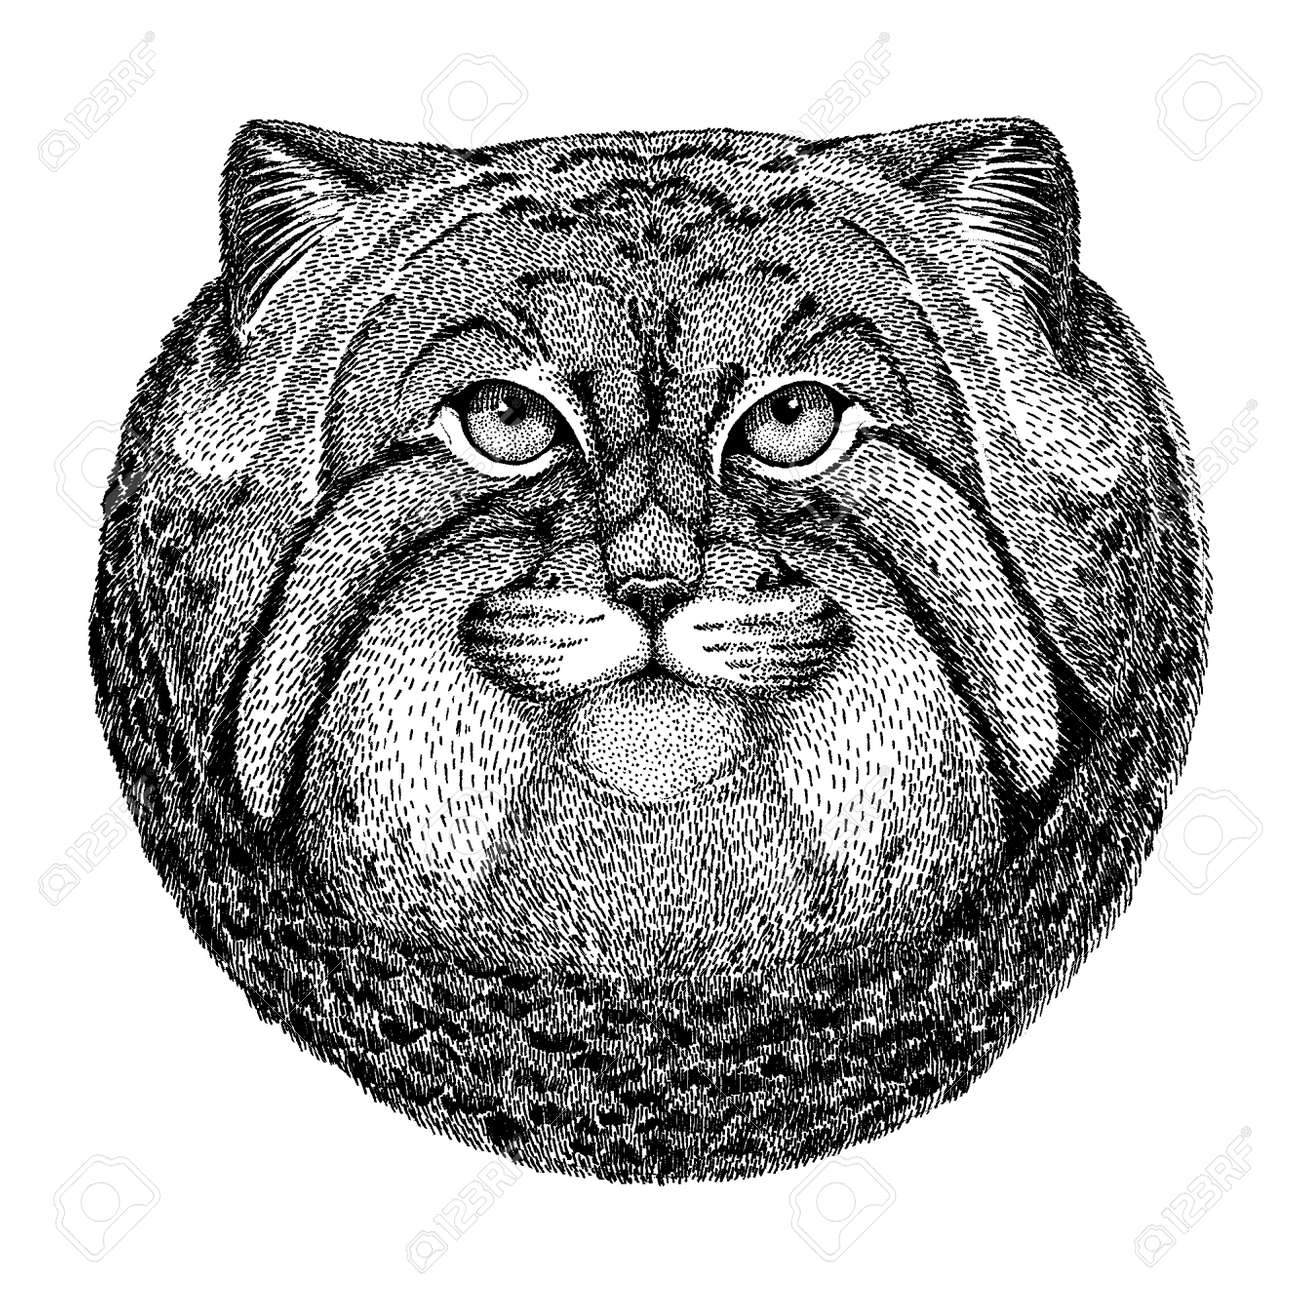 Wild cat. Manul. Wild animal for tattoo, nursery poster, children tee, clothing, posters, emblem, badge, patch - 143187262